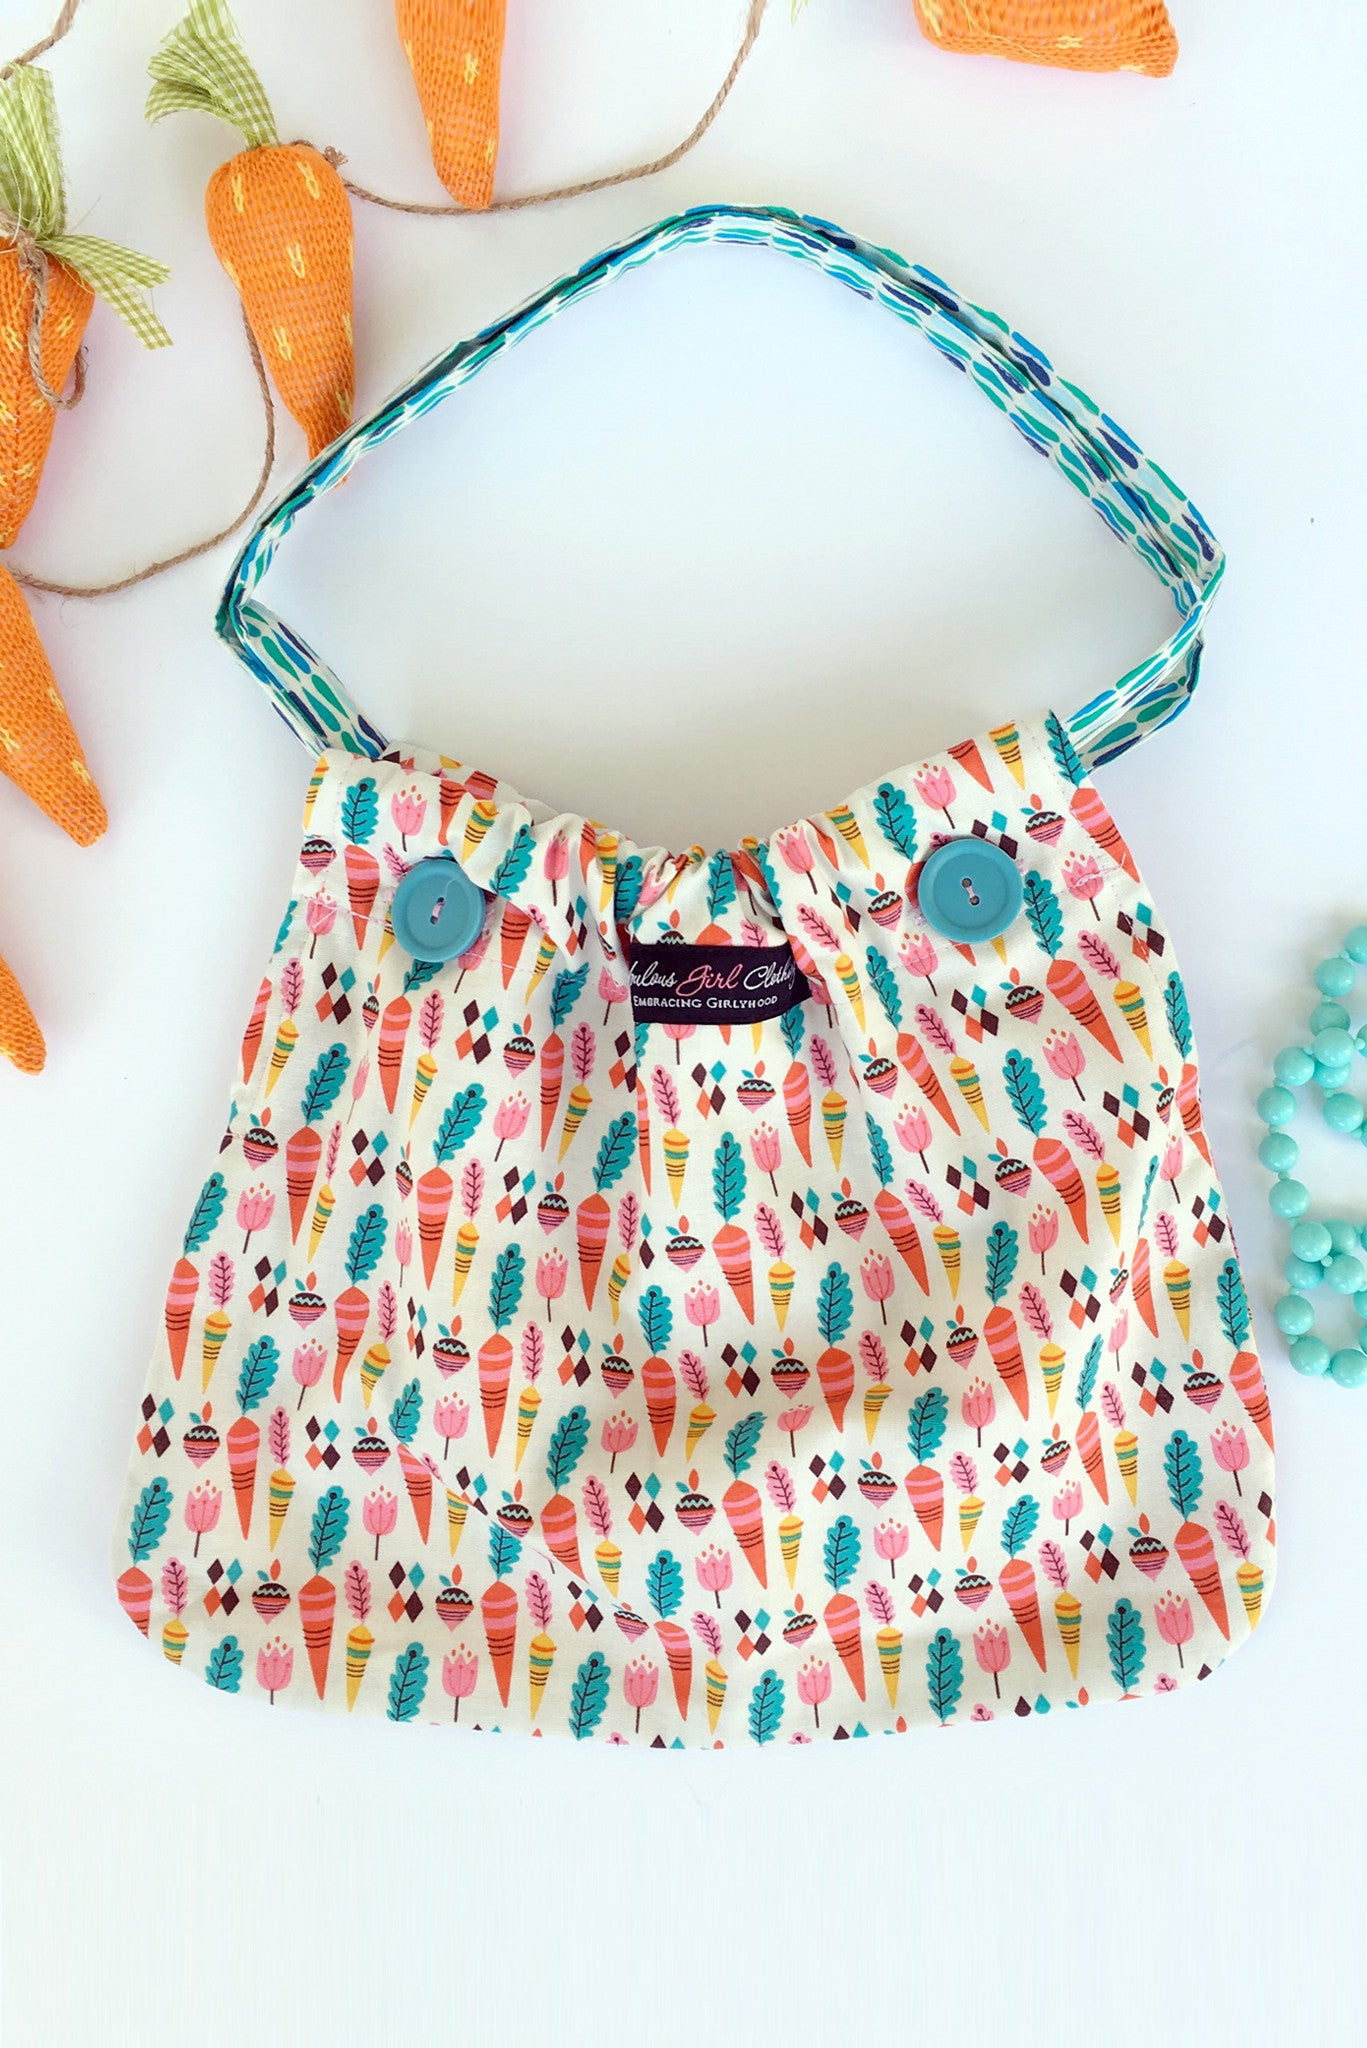 Reversible Pocketbook - Colorful Carrots